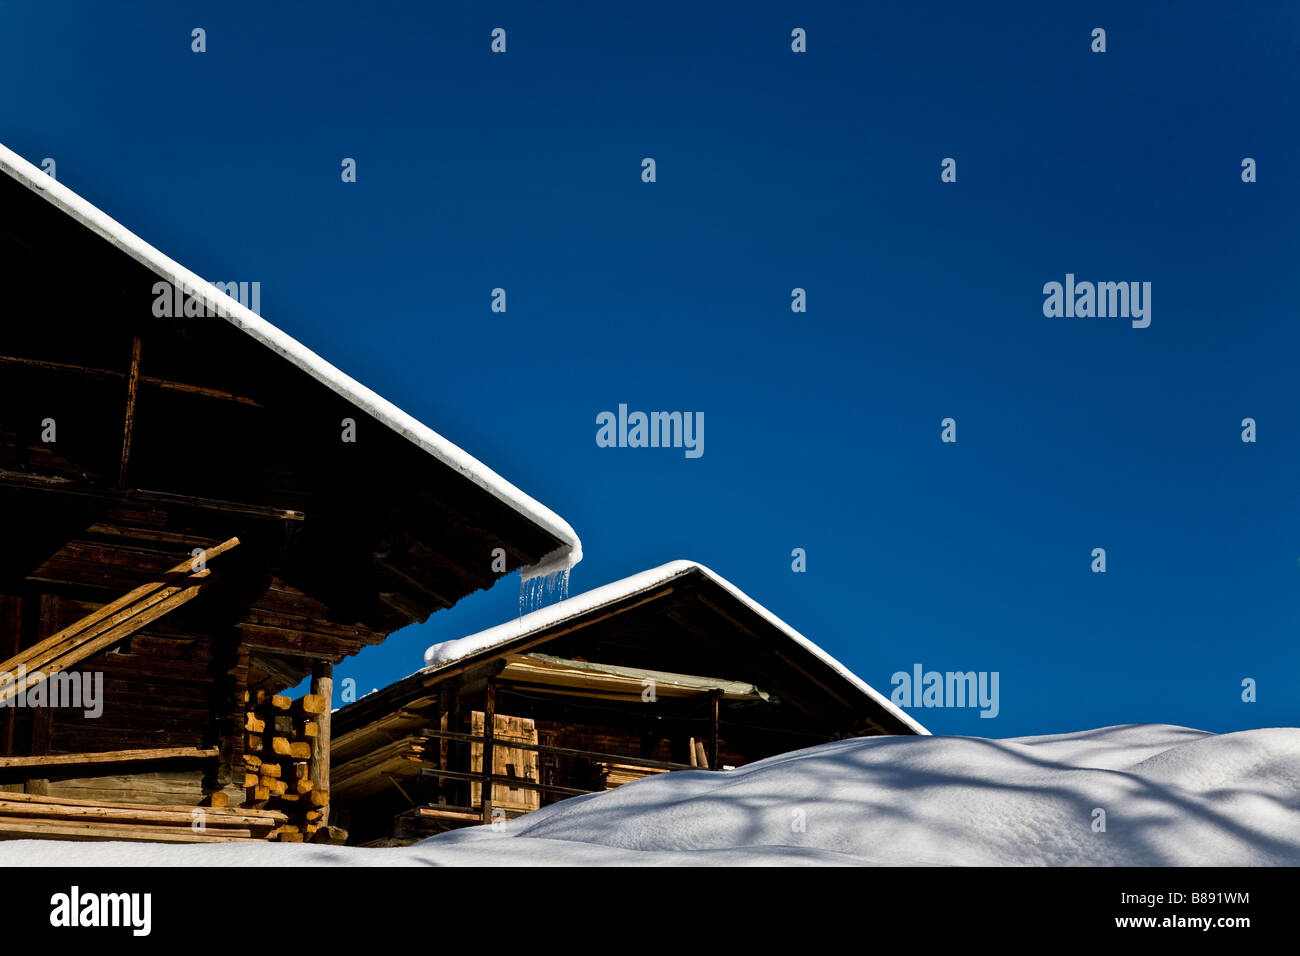 Snow covered wooden chalets with vivid blue sky Les Saises French Alpes - Stock Image